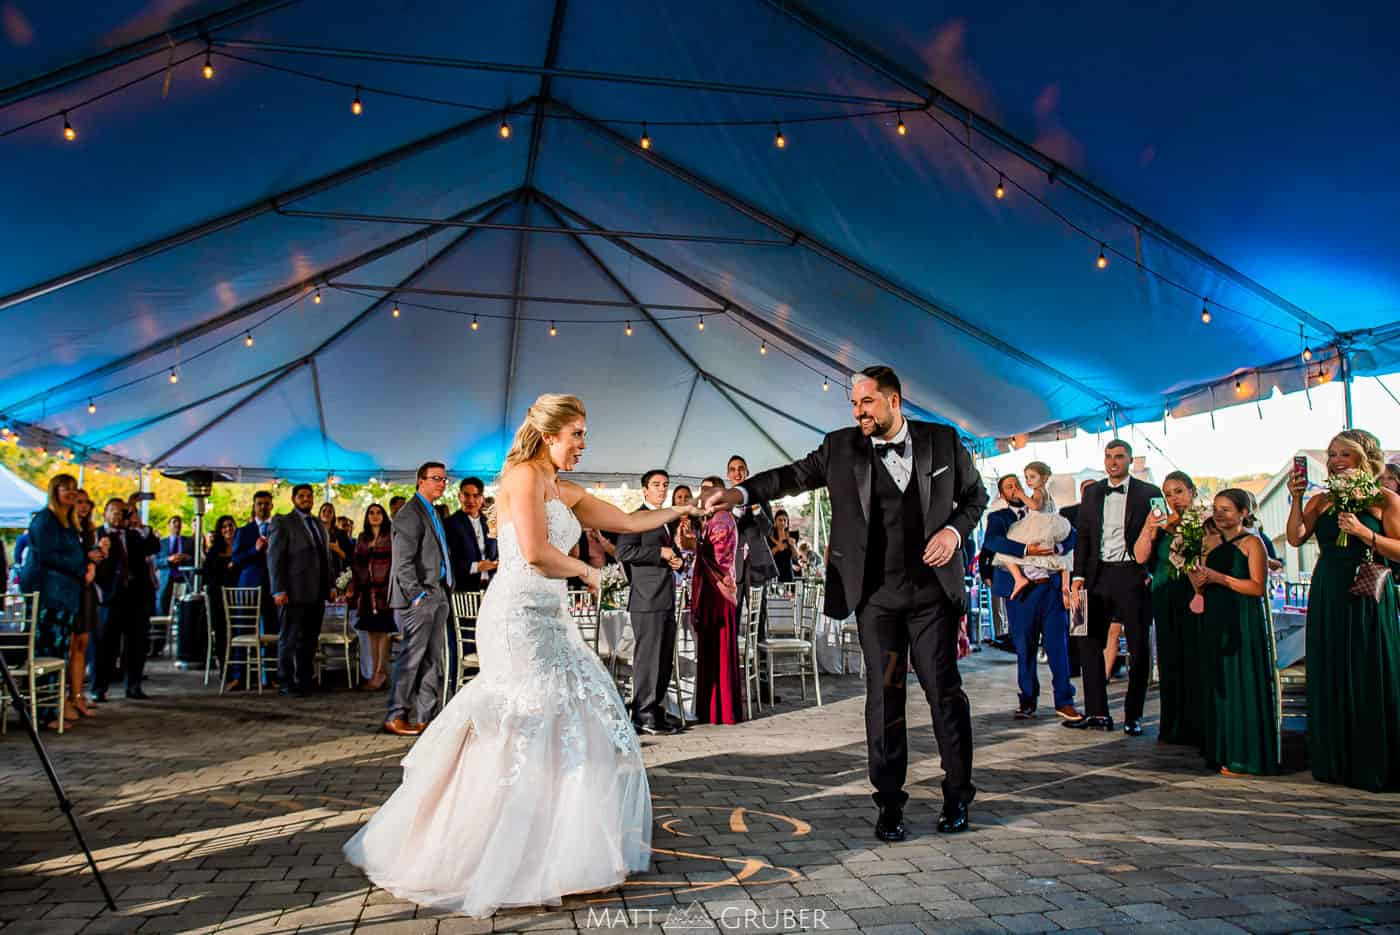 Downingtown Country Club Wedding Outdoor Tent